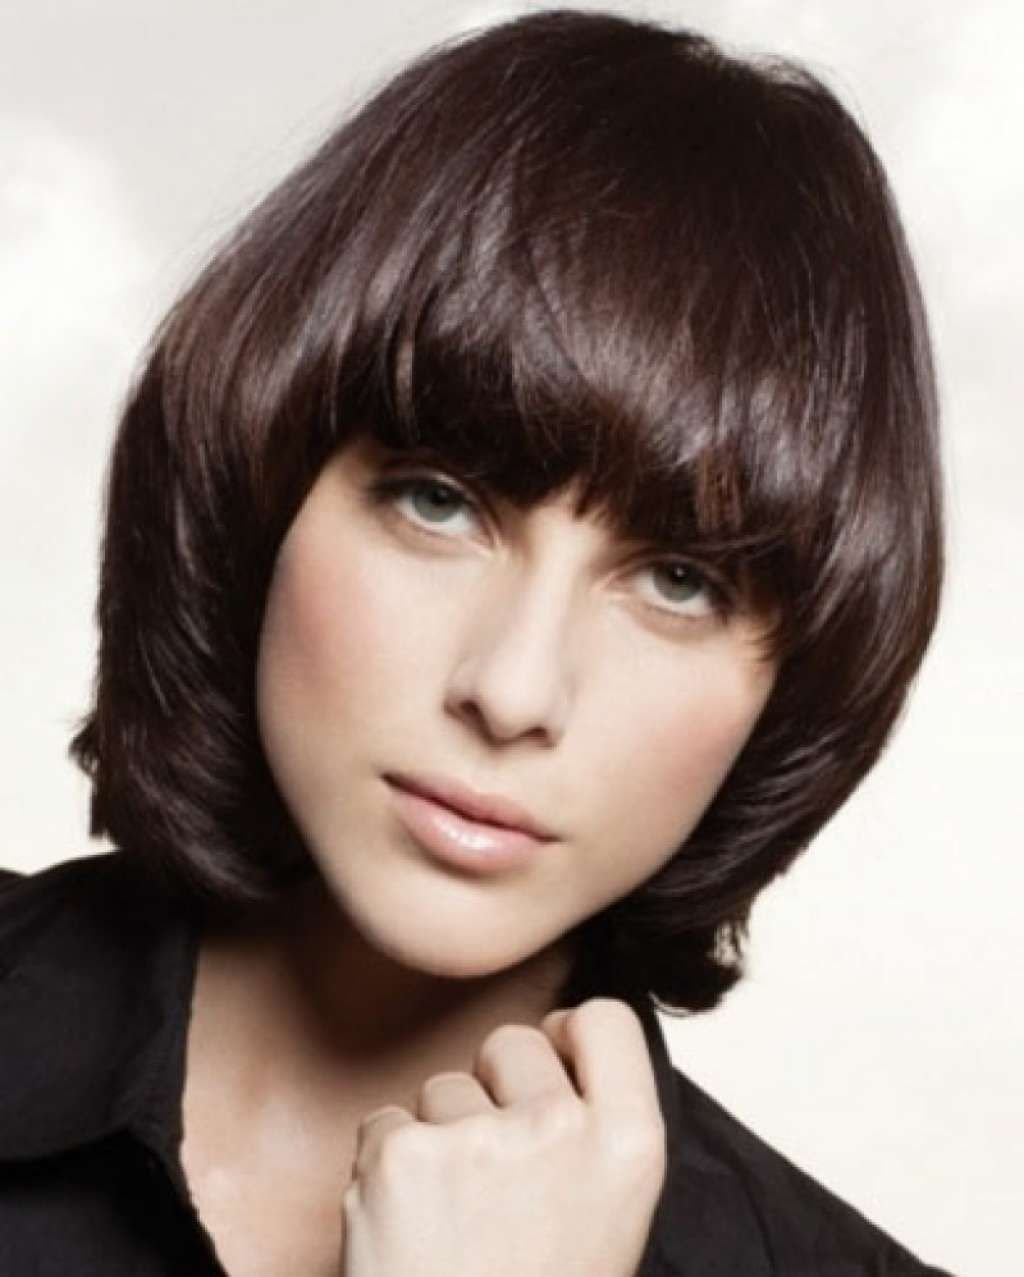 The Best Pageboy Haircut For Medium Length Hair One1Lady Com Hair Hairs Hairstyle Hairstyles Pictures